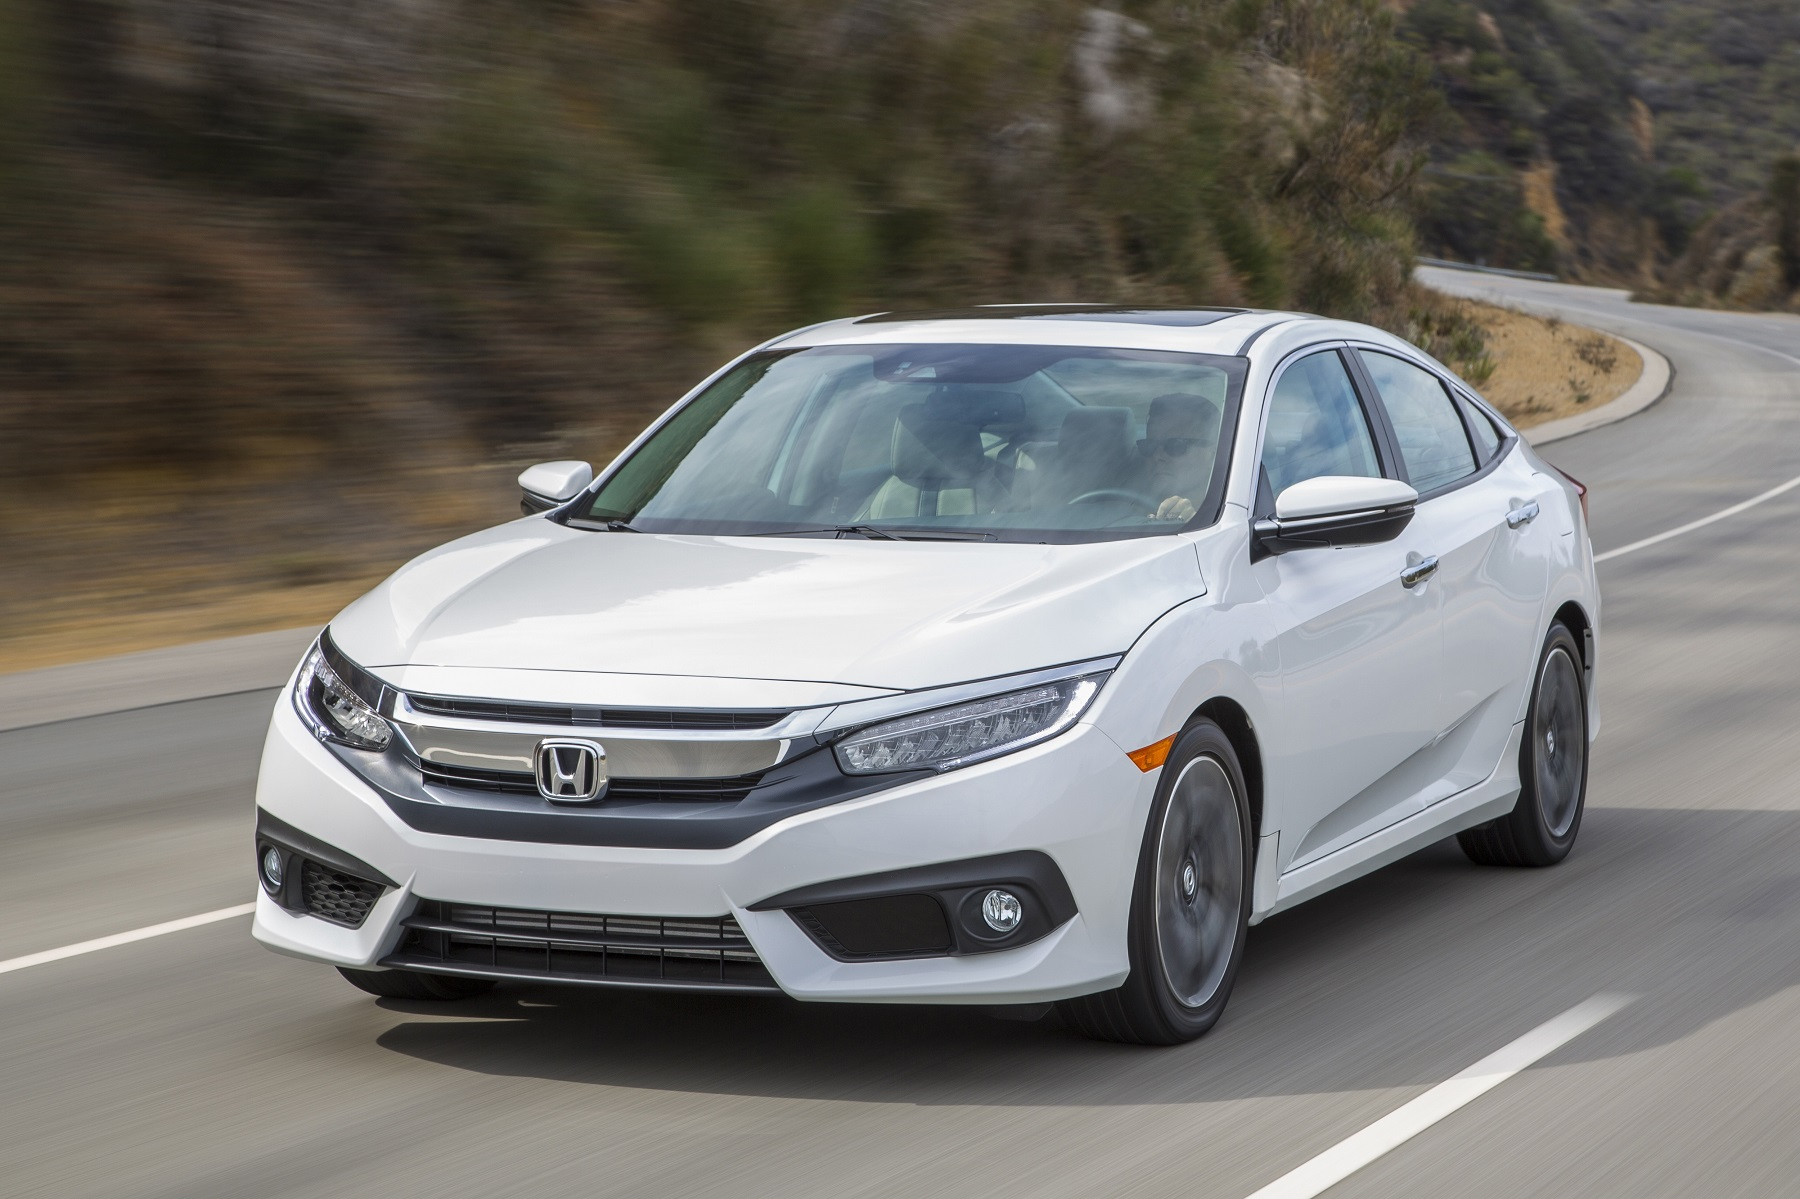 Manufacturer photo: Honda designers and engineers deliver a sportier and more premium-quality Civic